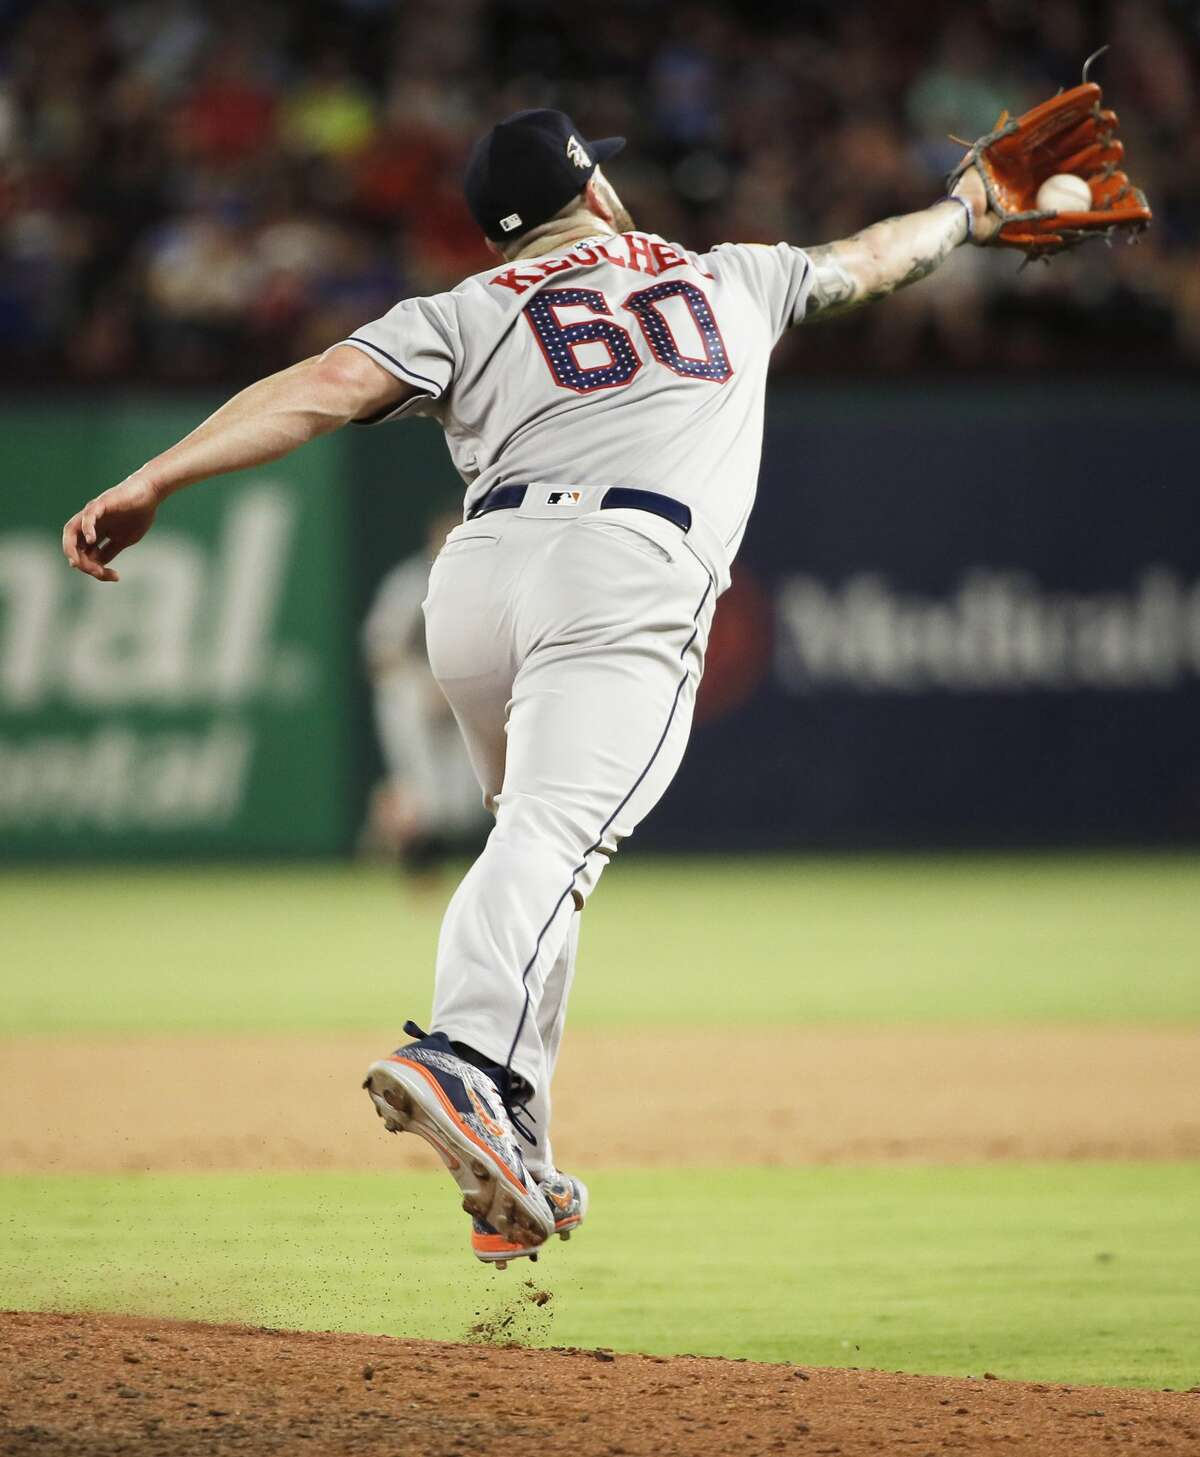 Houston Astros starting pitcher Dallas Keuchel (60) spins to catch a hit by Texas Rangers' Elvis Andrus (1) during the fifth inning of a baseball game, Tuesday, July 3, 2018, in Arlington, Texas. Houston won 5-3. (AP Photo/Brandon Wade)